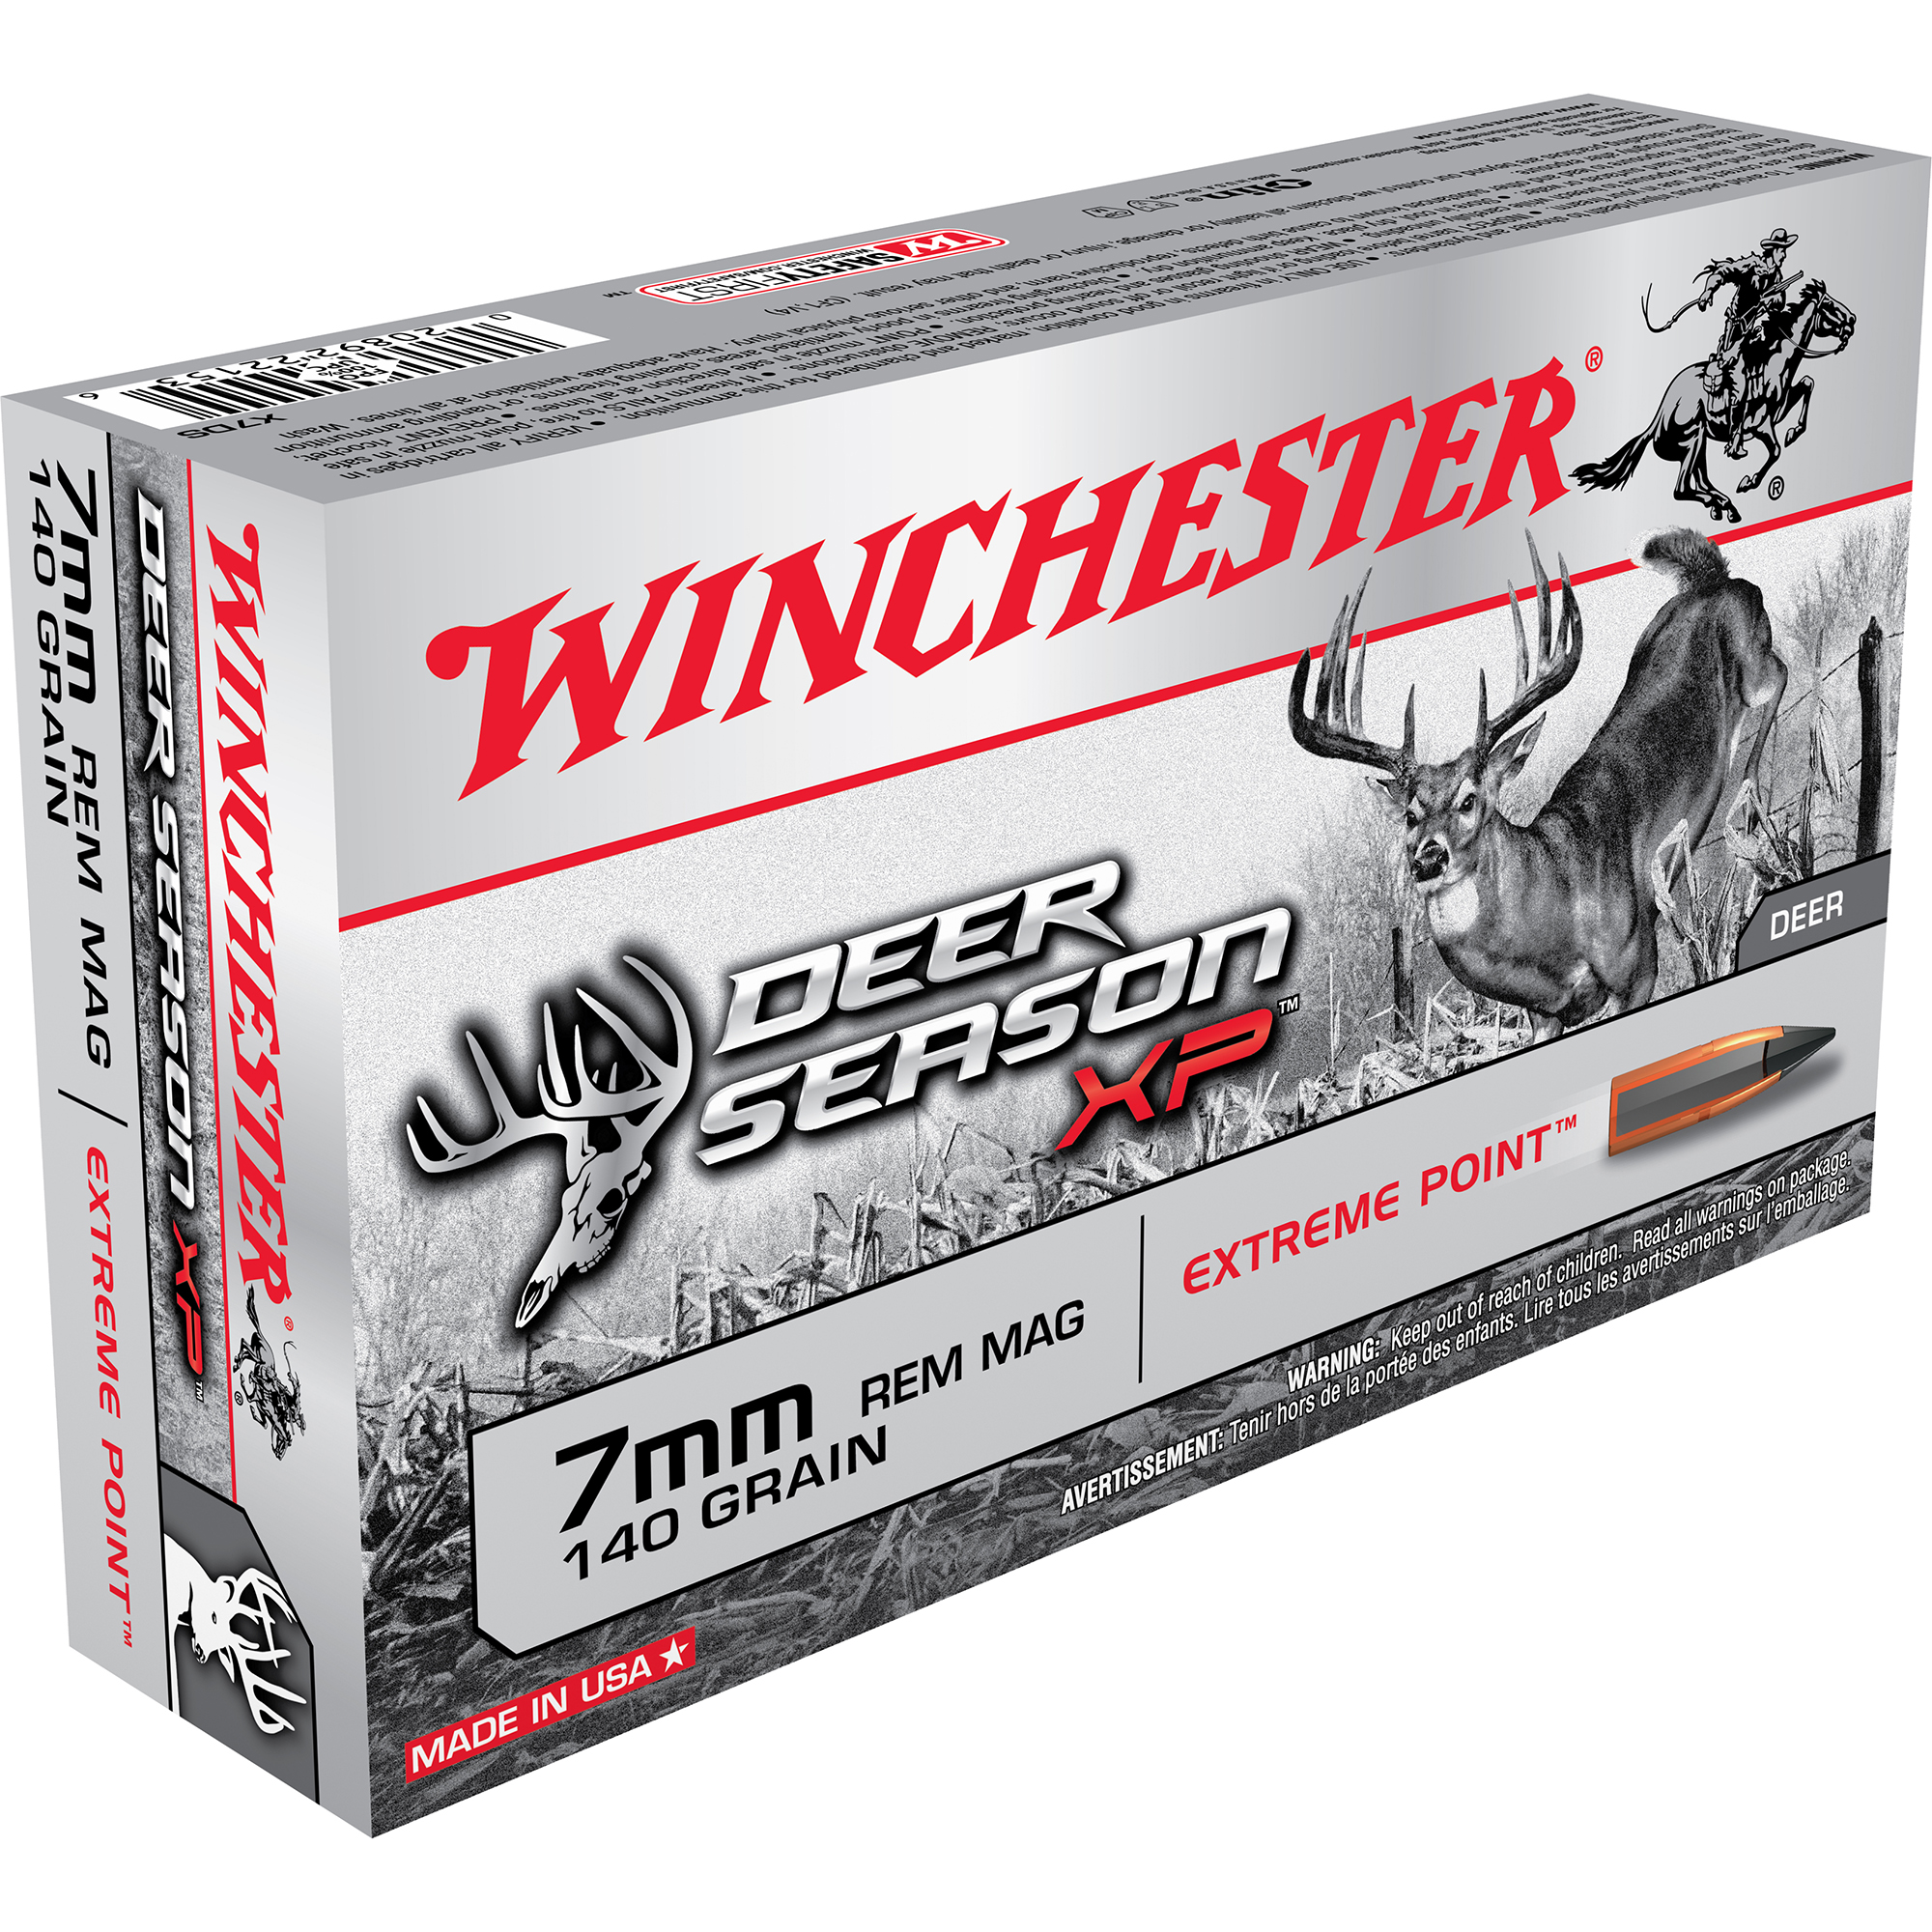 Winchester Deer Season XP Rifle Ammo, 7mm Rem Mag, 140-gr, Extreme Point